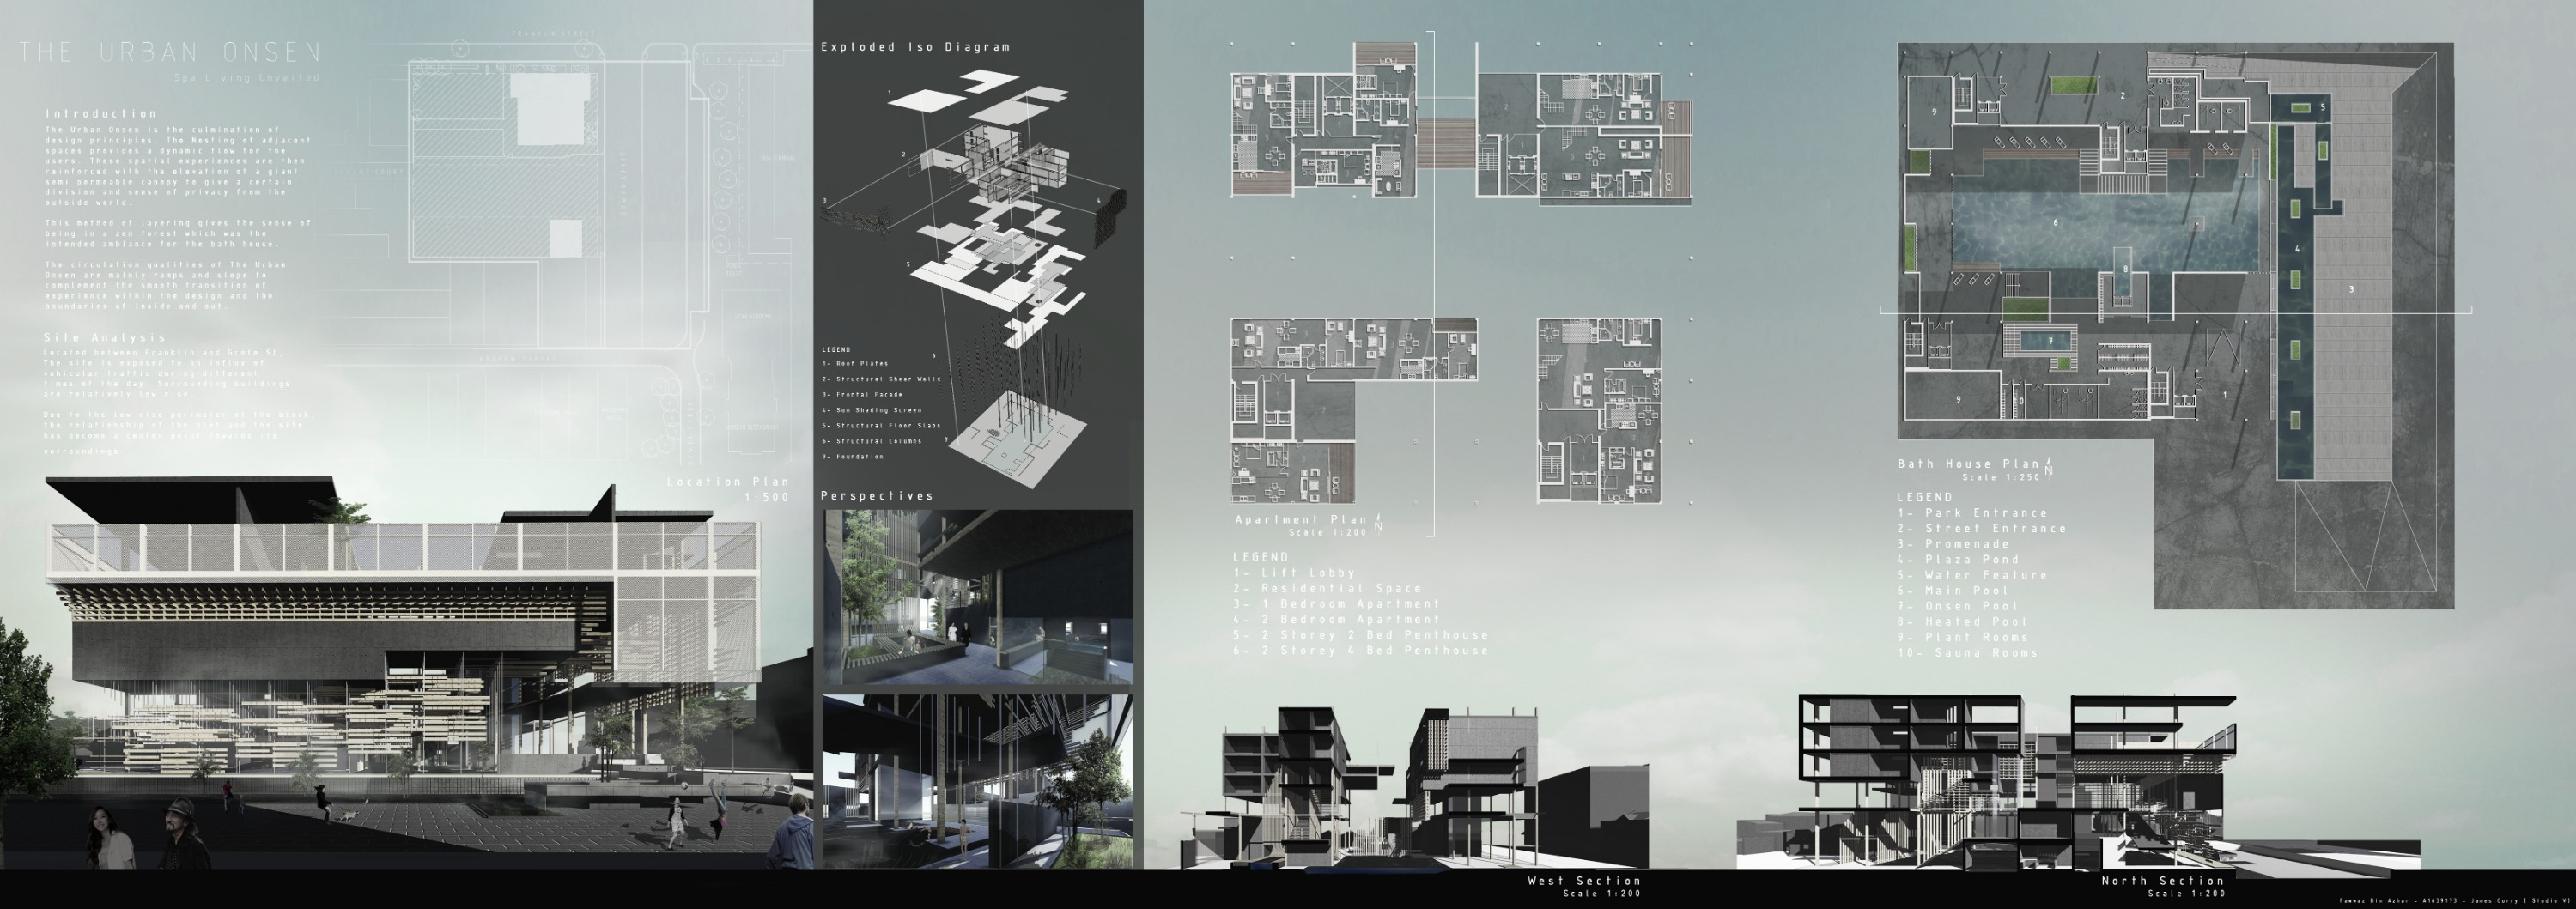 FINAL PRESENTATION BOARDS STUDIO V_edite